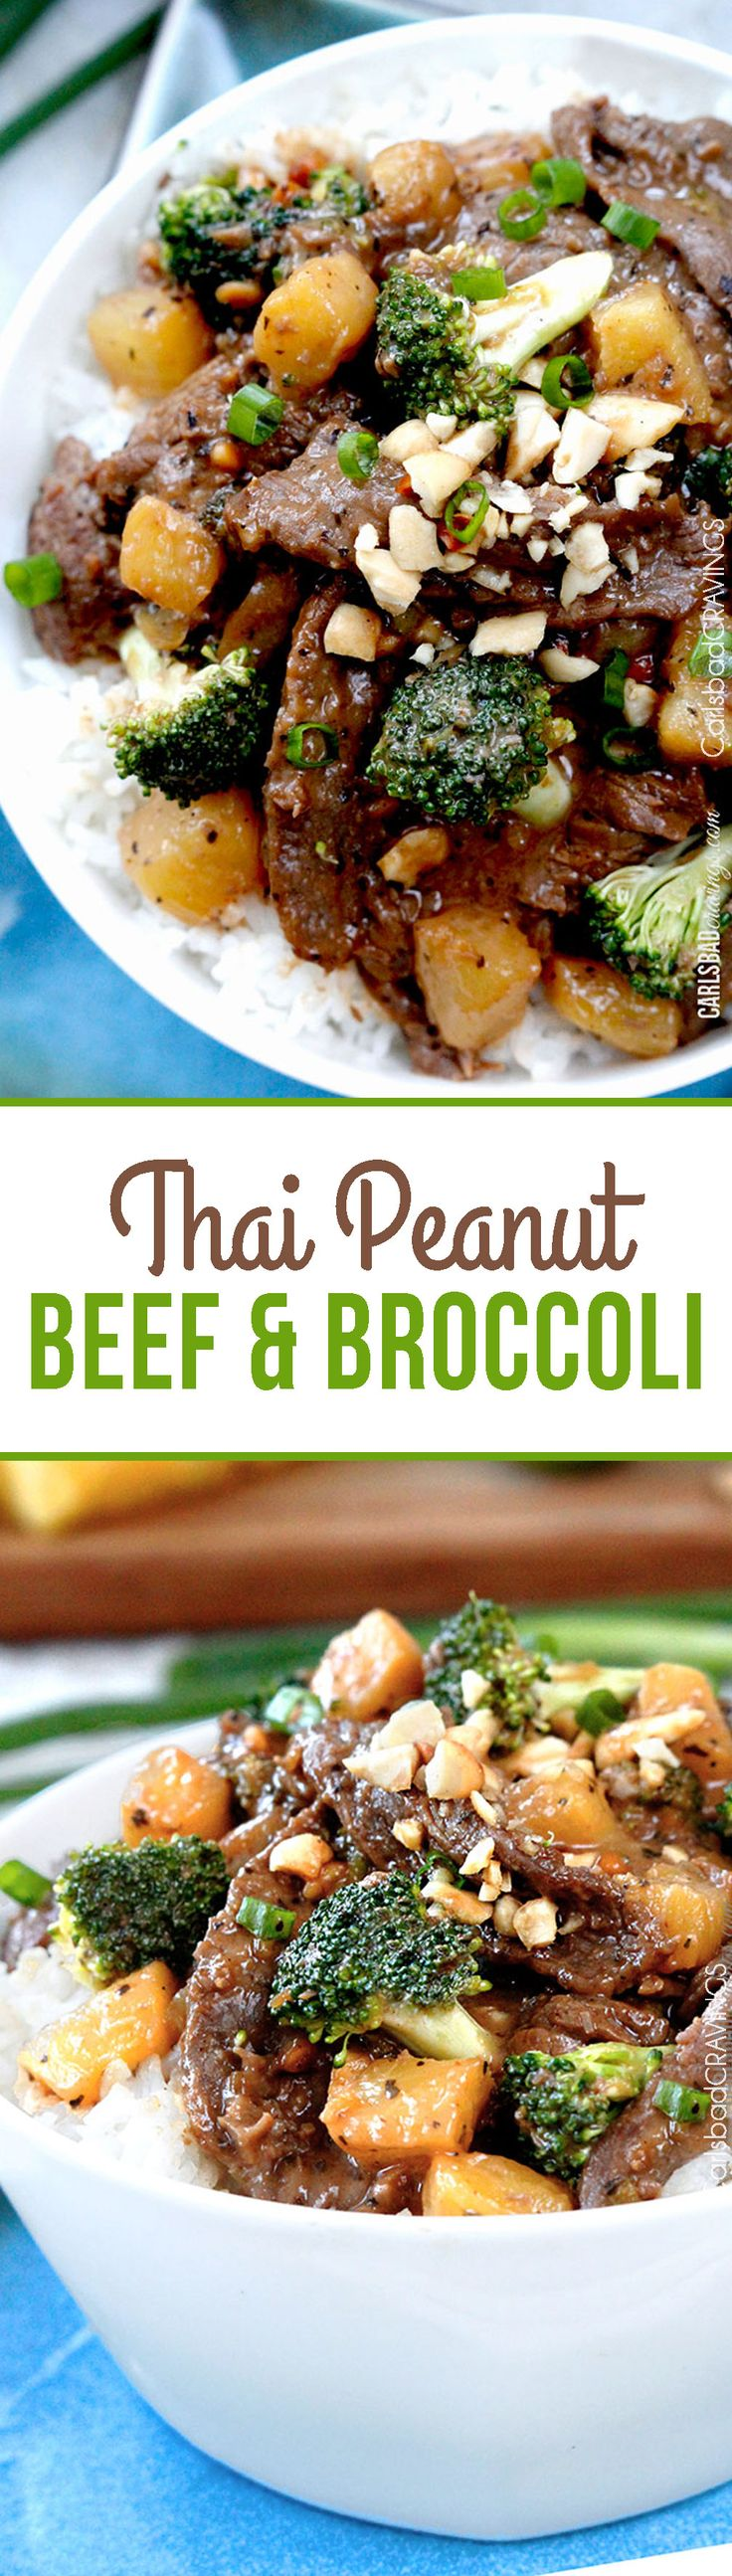 A great recipe. I served it with coconut rice